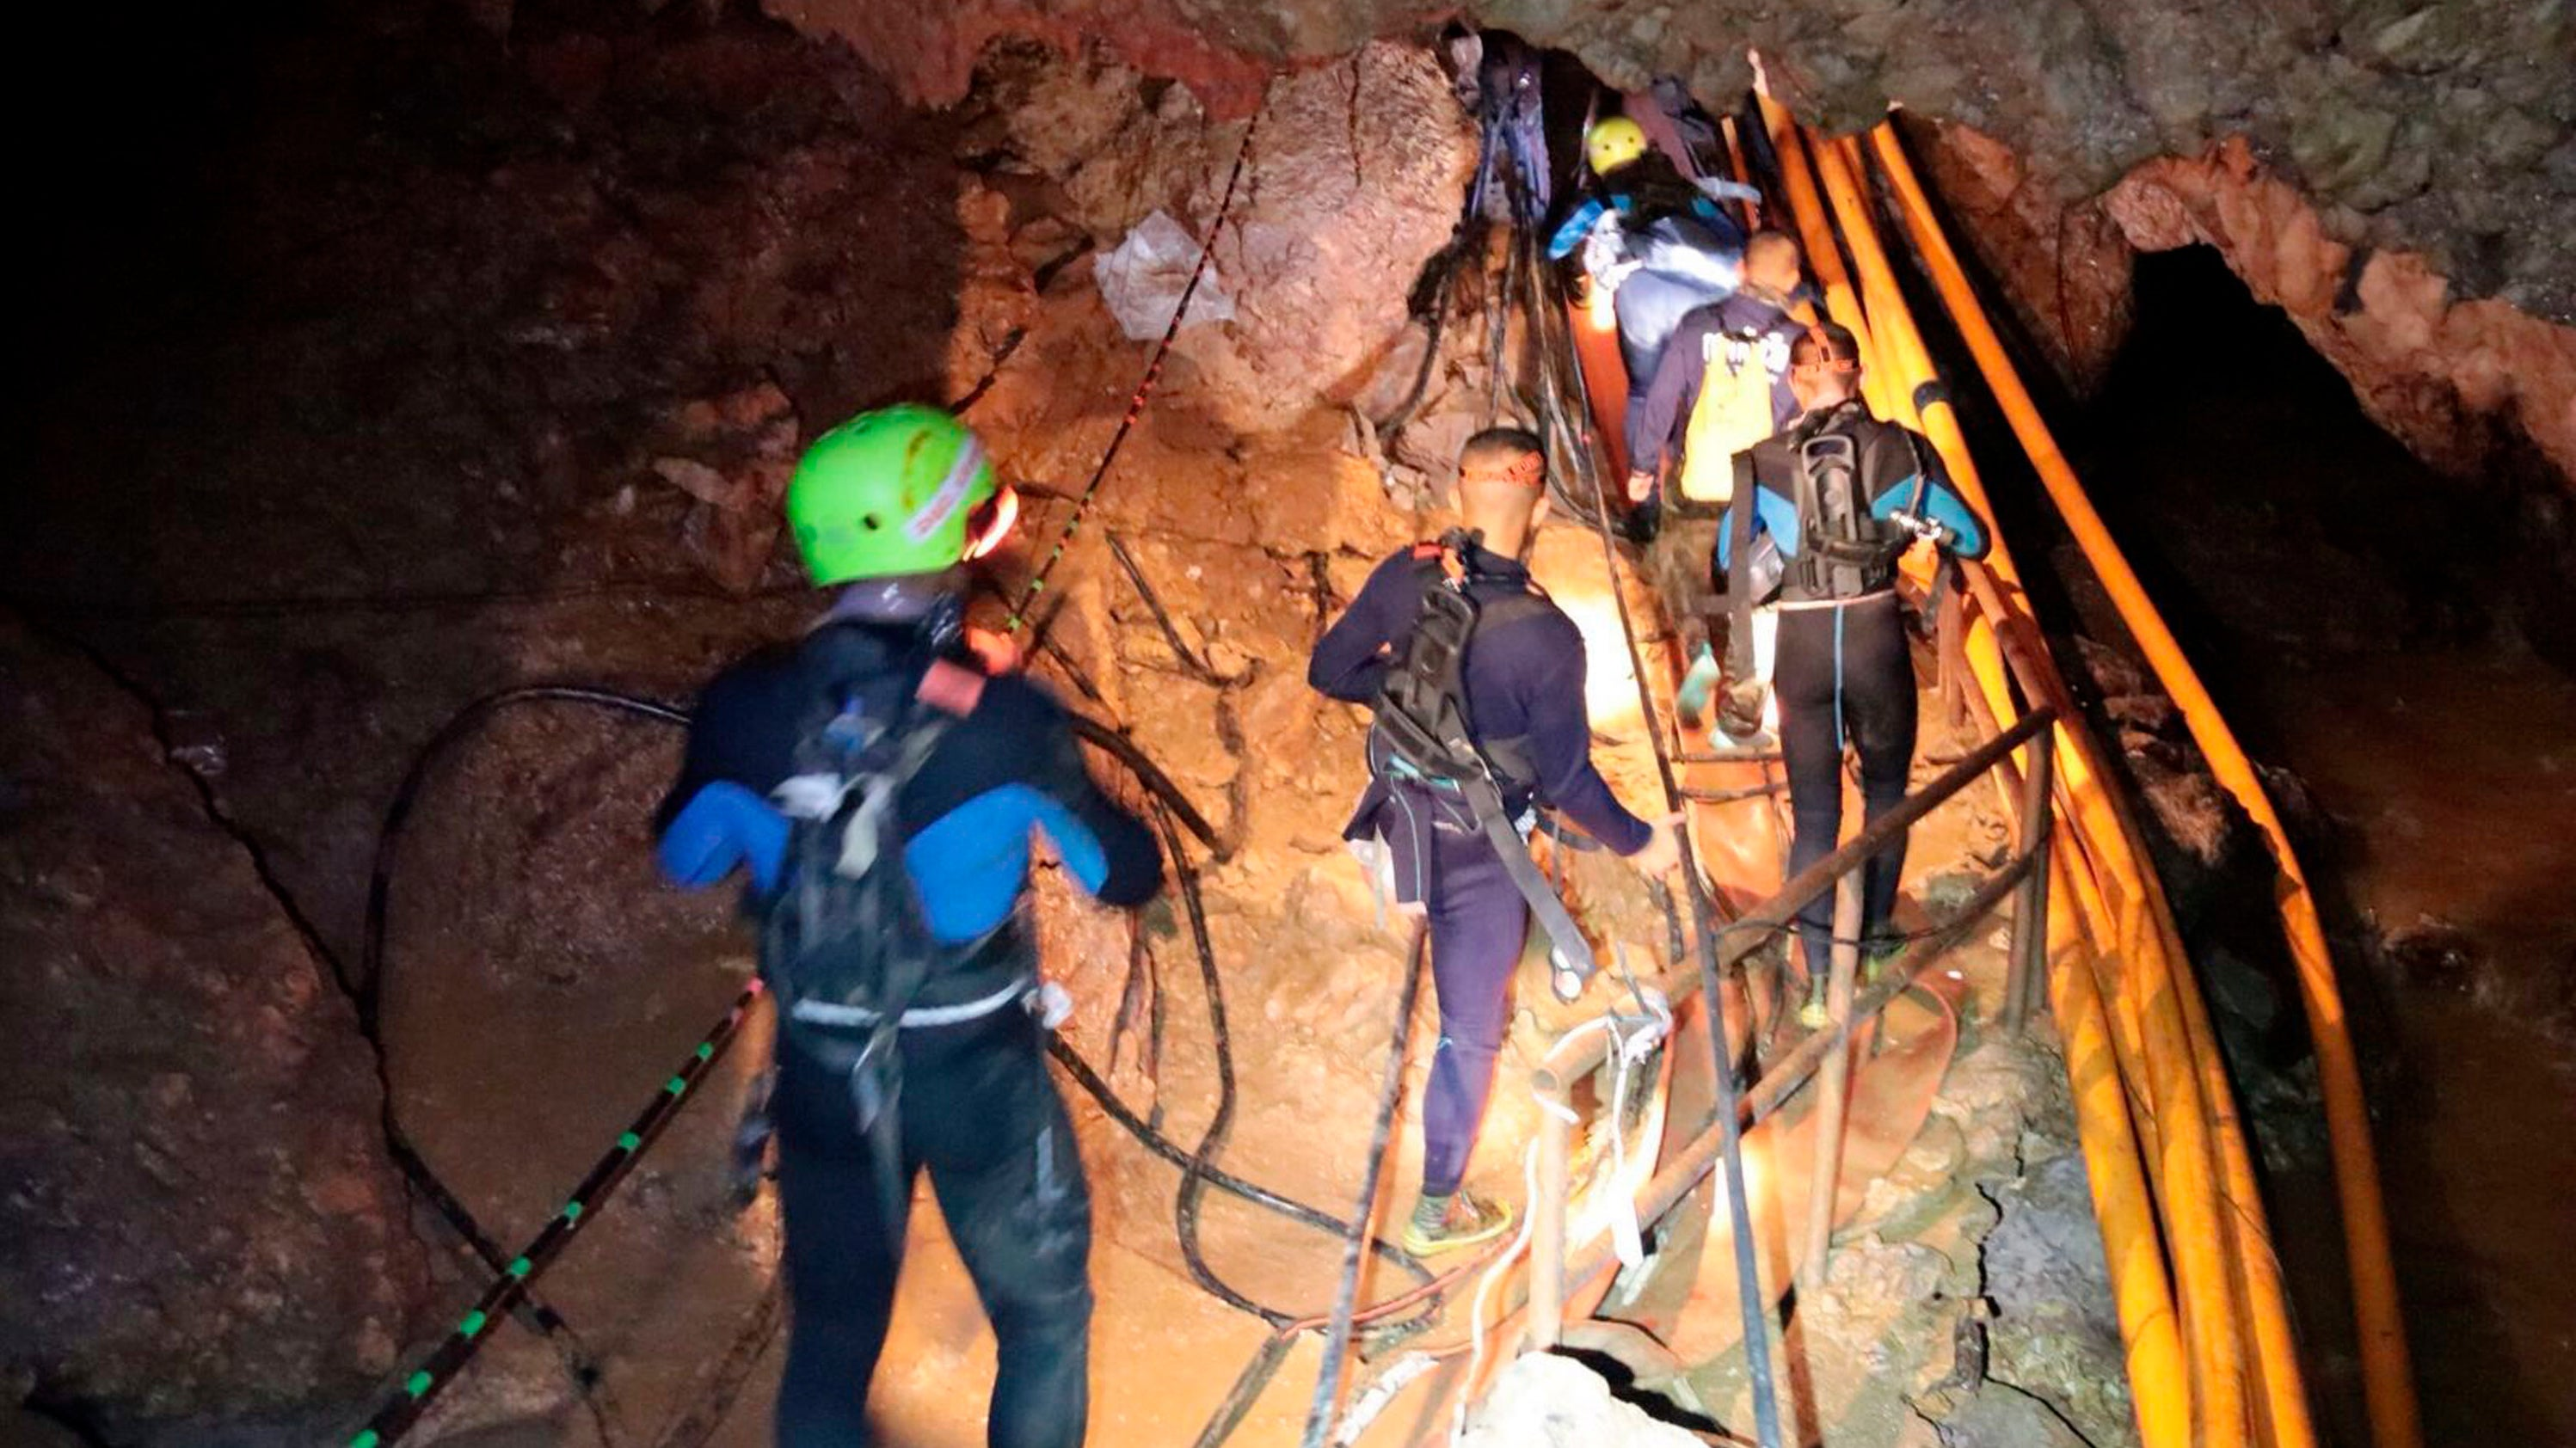 The Thai Cave Rescue Is Going Well So Far, With Four Boys Successfully Extracted